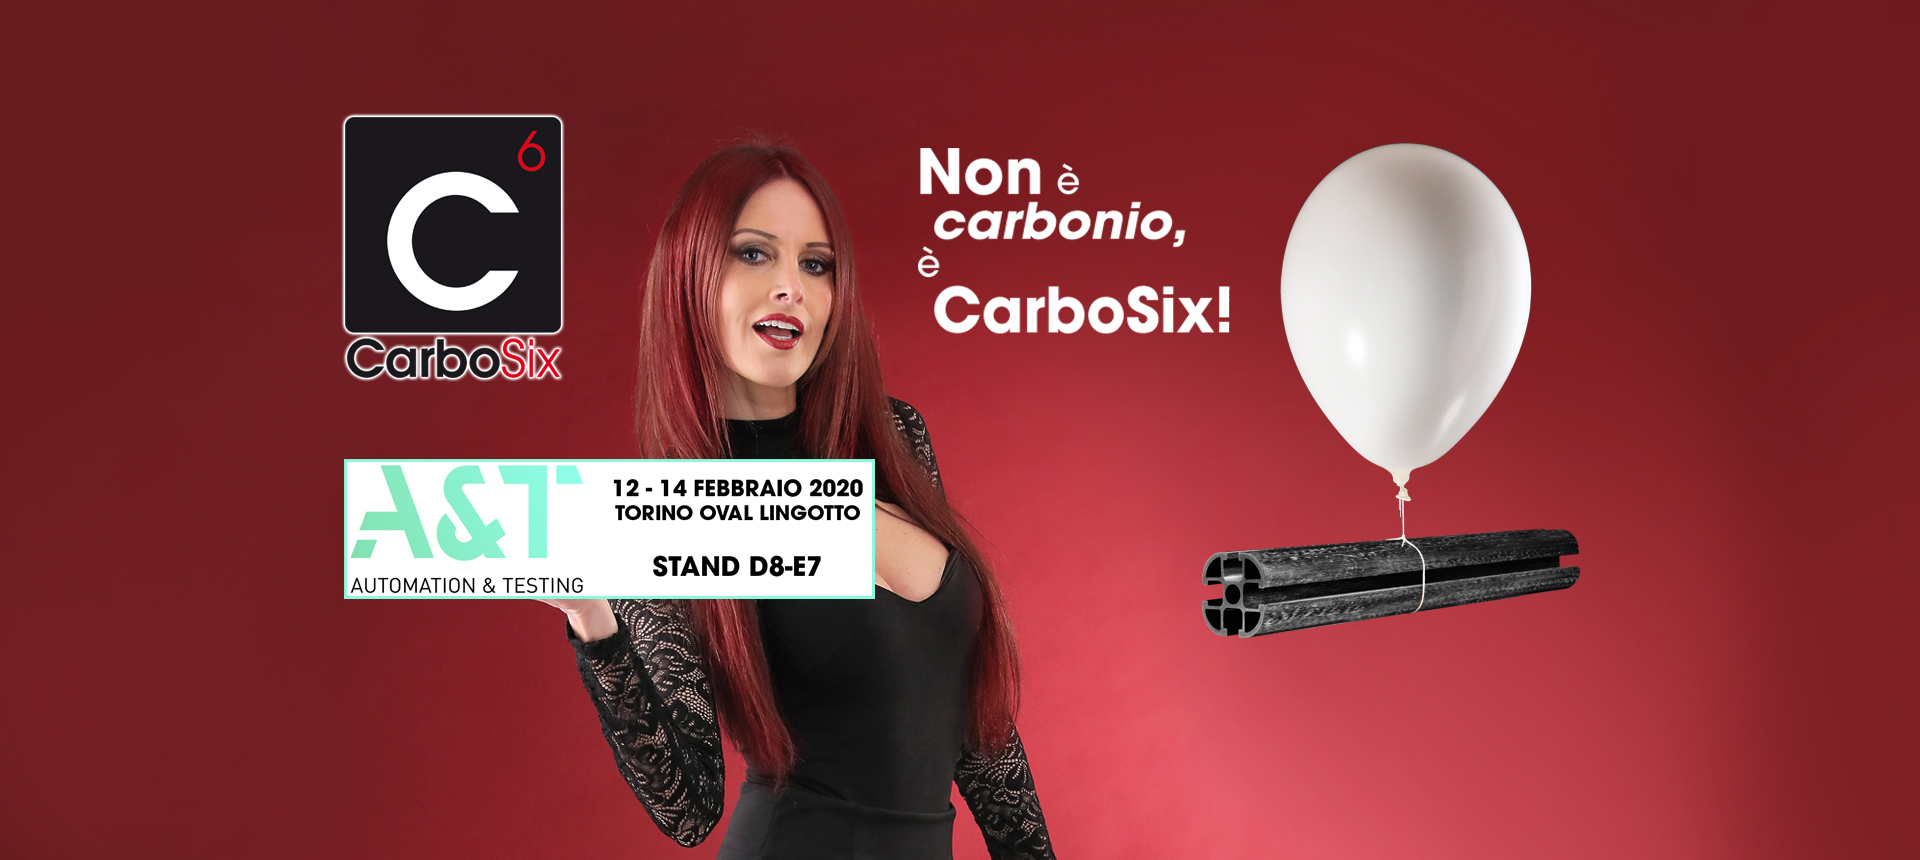 Carbosix A&T 2020